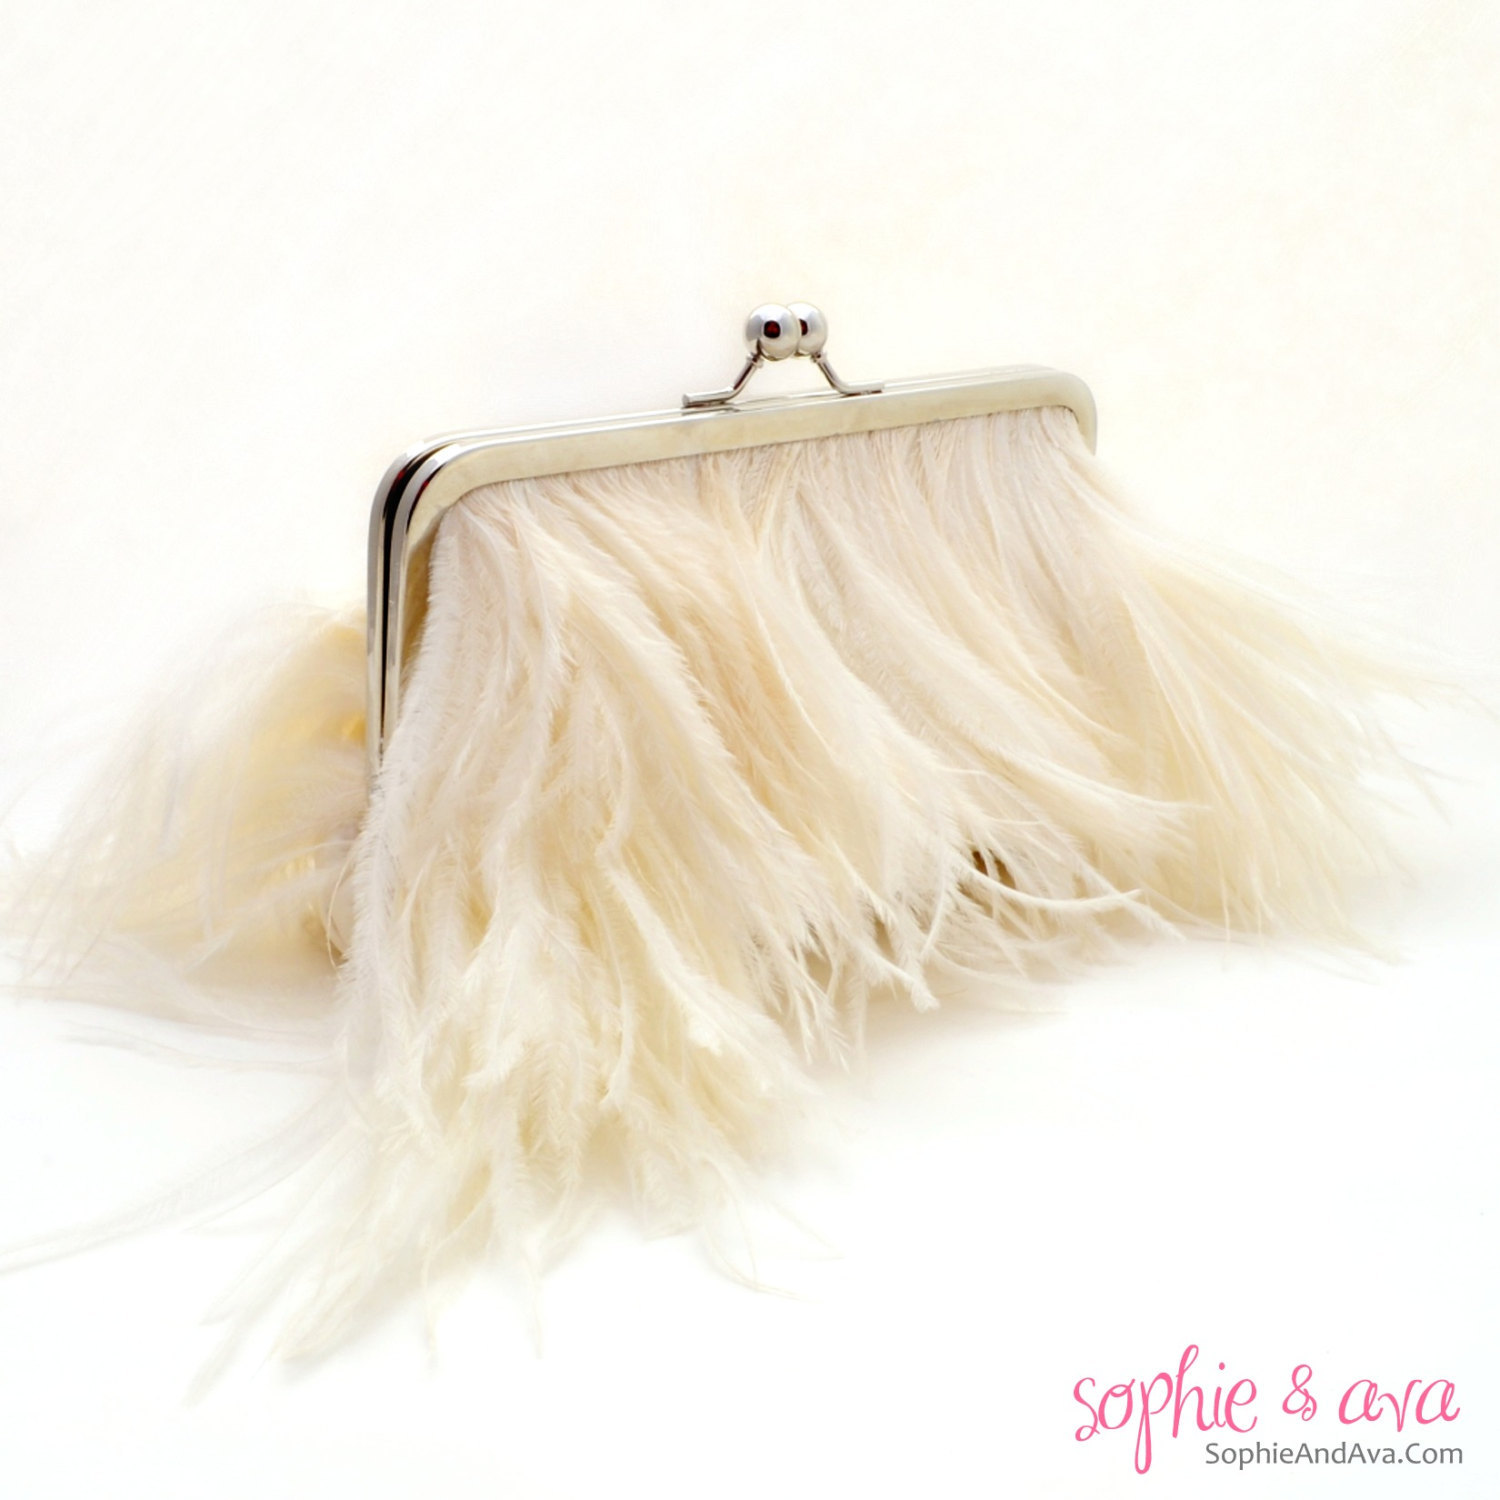 Beauty, Reception, Flowers & Decor, Bridesmaids, Bridesmaids Dresses, Wedding Dresses, Shoes, Fashion, white, ivory, gold, dress, Feathers, Custom, Bridal, Purse, Cream, Clutch, Inspiration board, Off, Feather, Ostrich, Feather Wedding Dresses